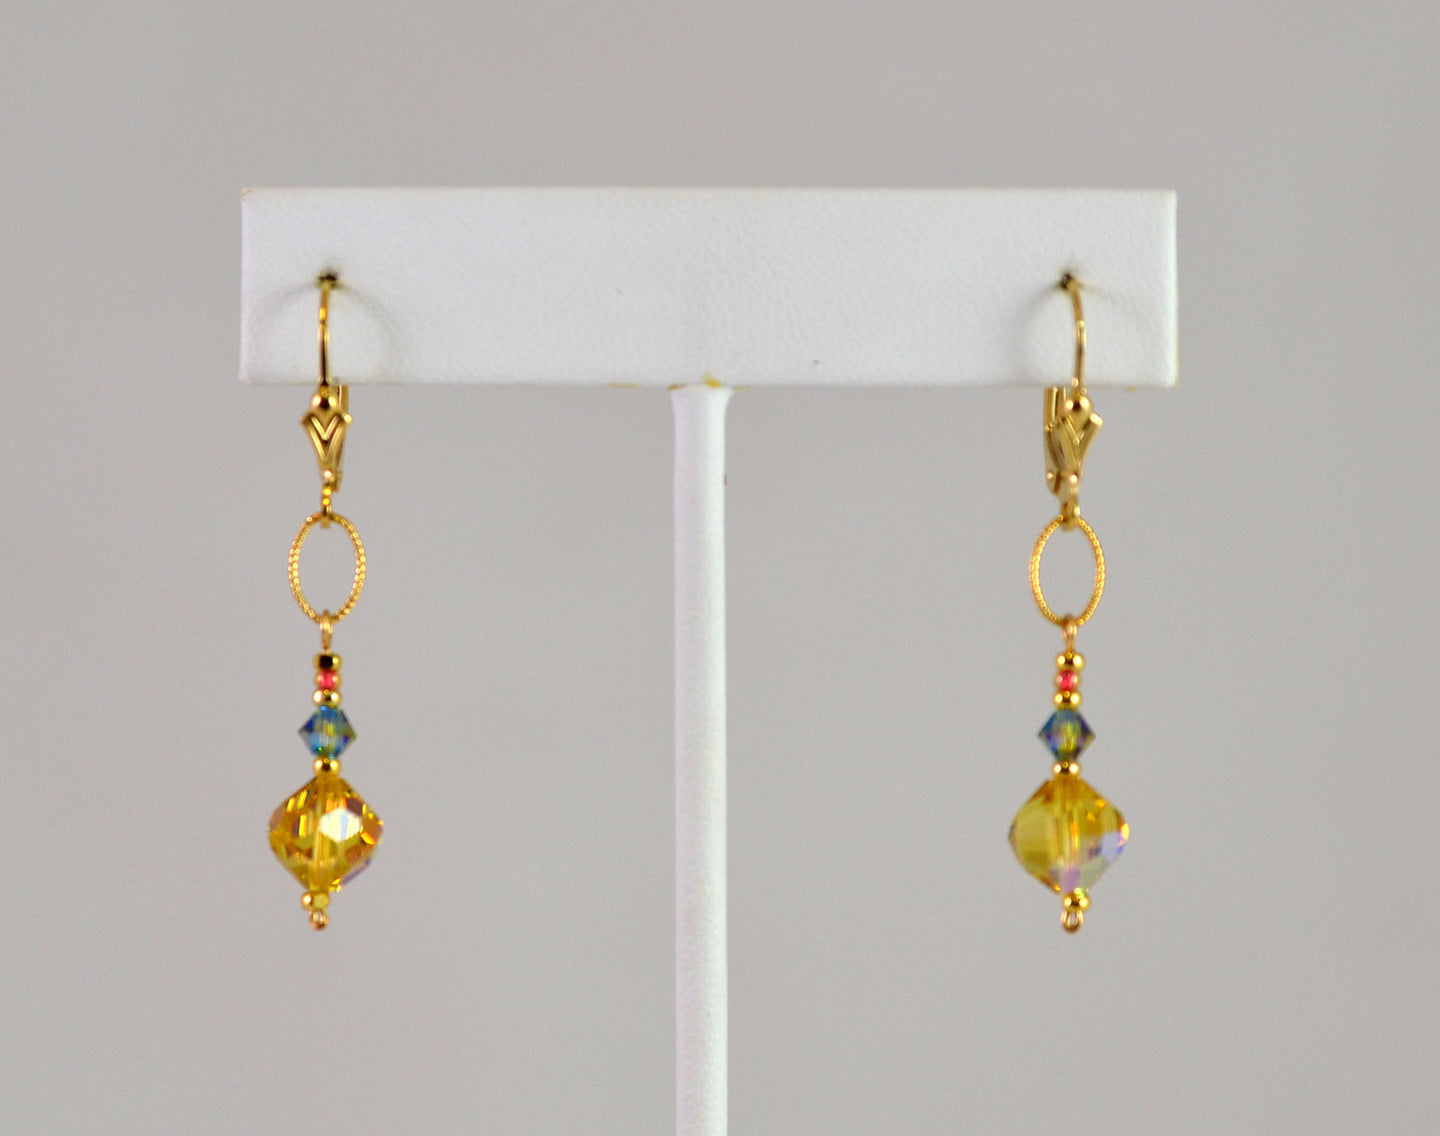 Earrings with Vintage Light Madeiro Ball by Cynthia Bloom